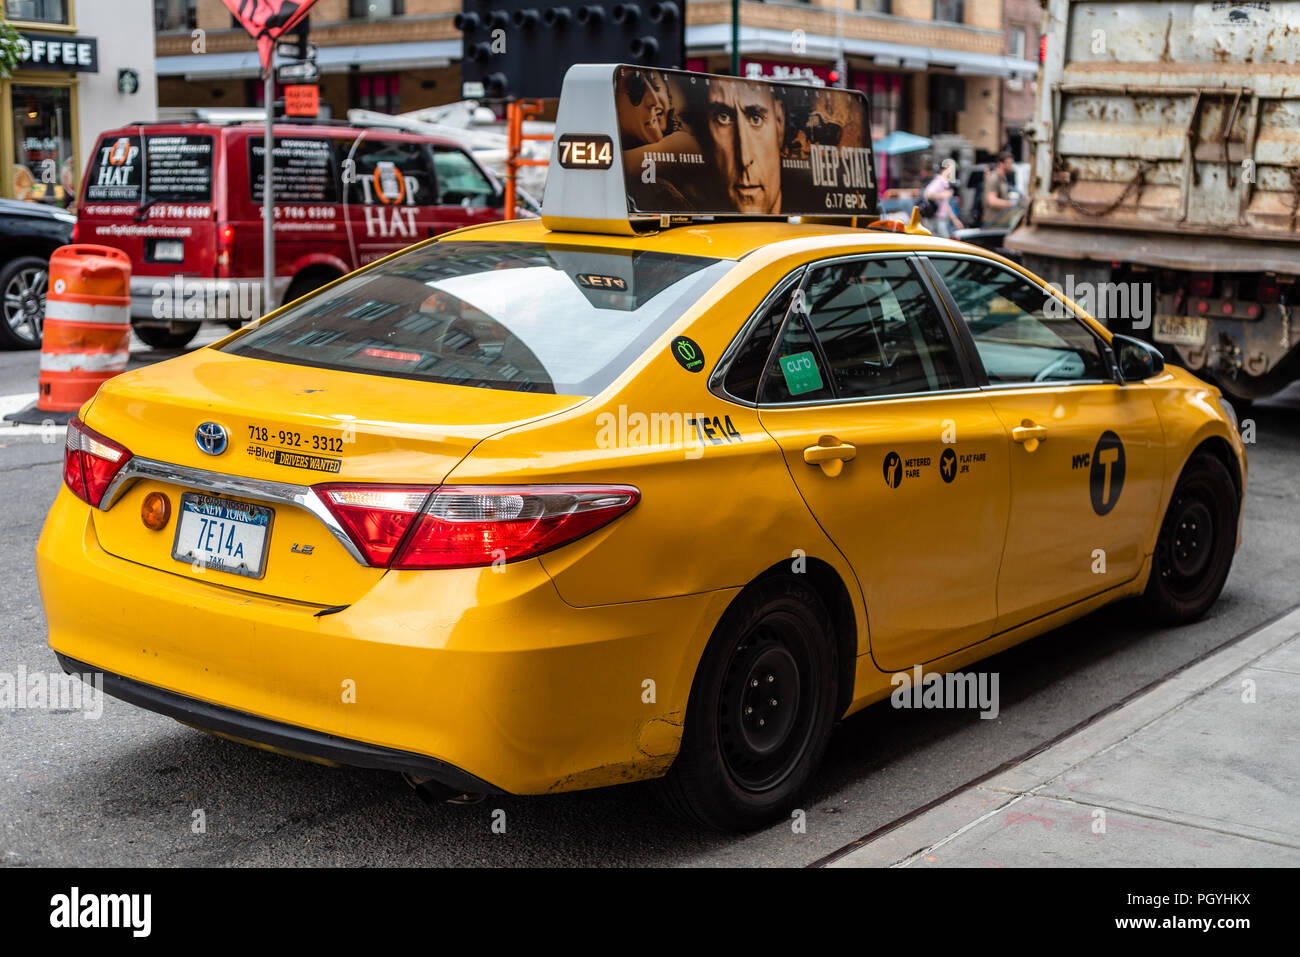 New York City, USA - June 22, 2018: Yellow taxi cab parked in the street bridge in Manhattan - Stock Image